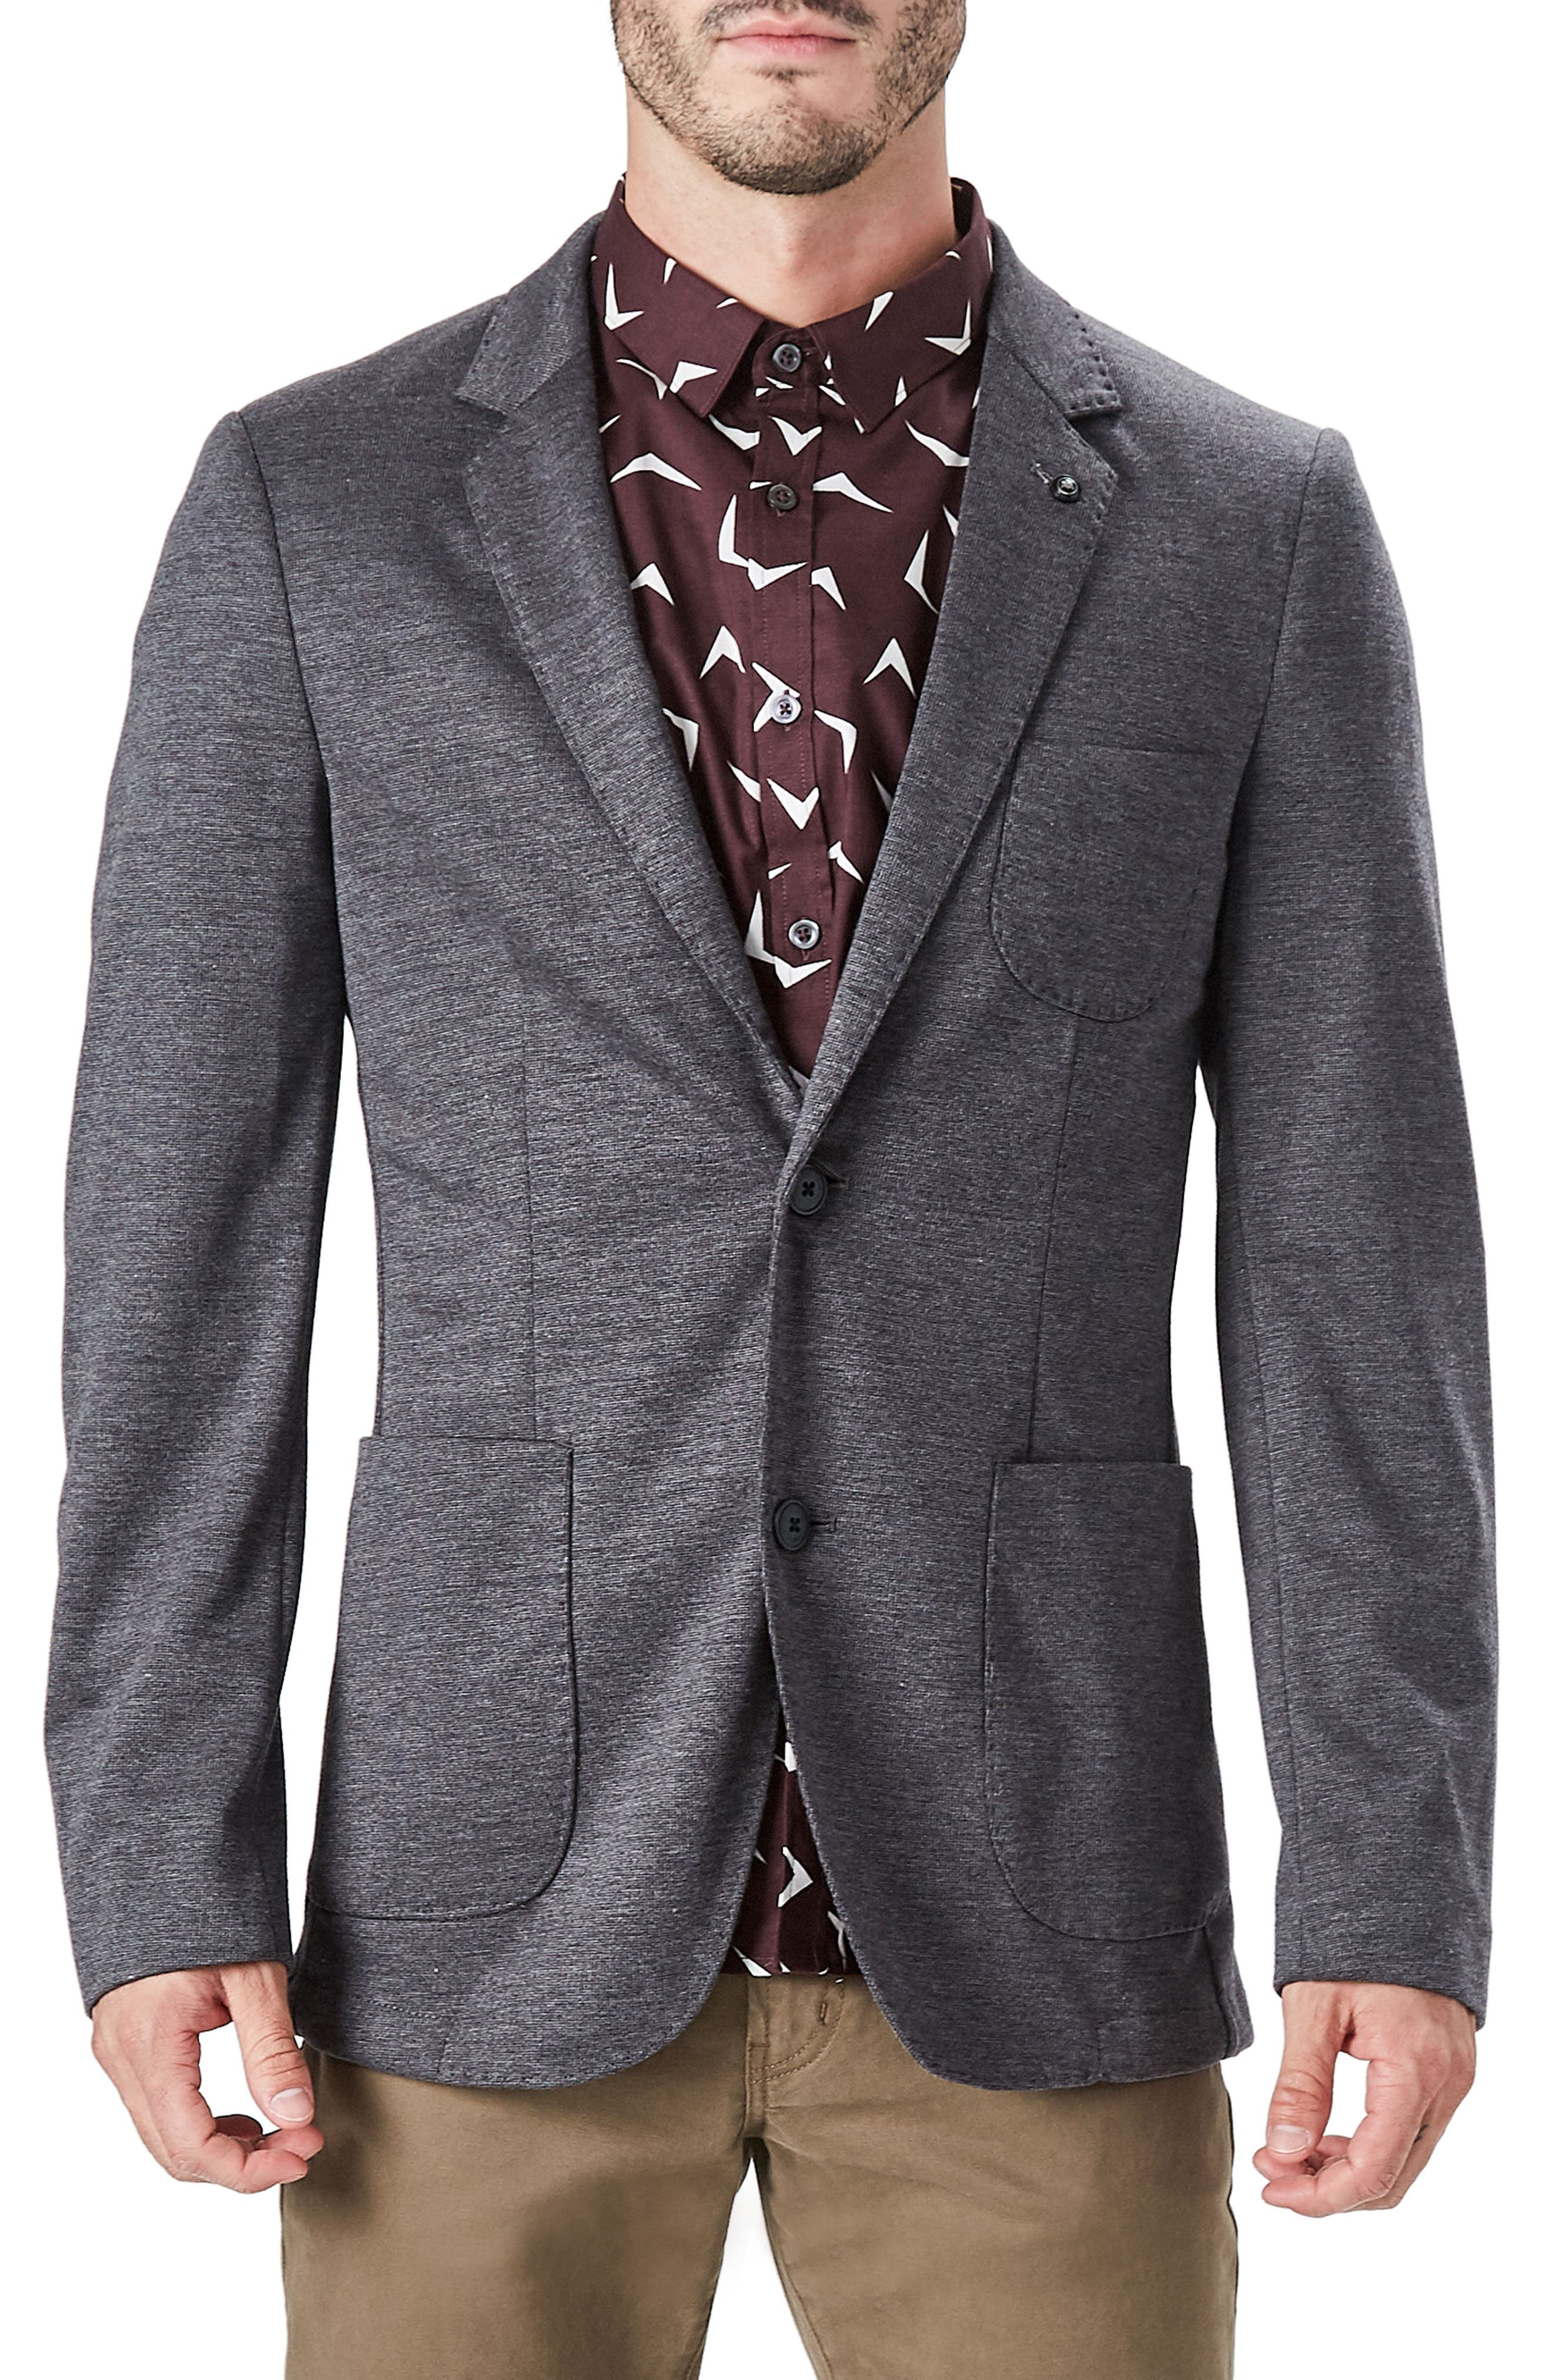 Massa Casual Blazer,                         Main,                         color, Charcoal